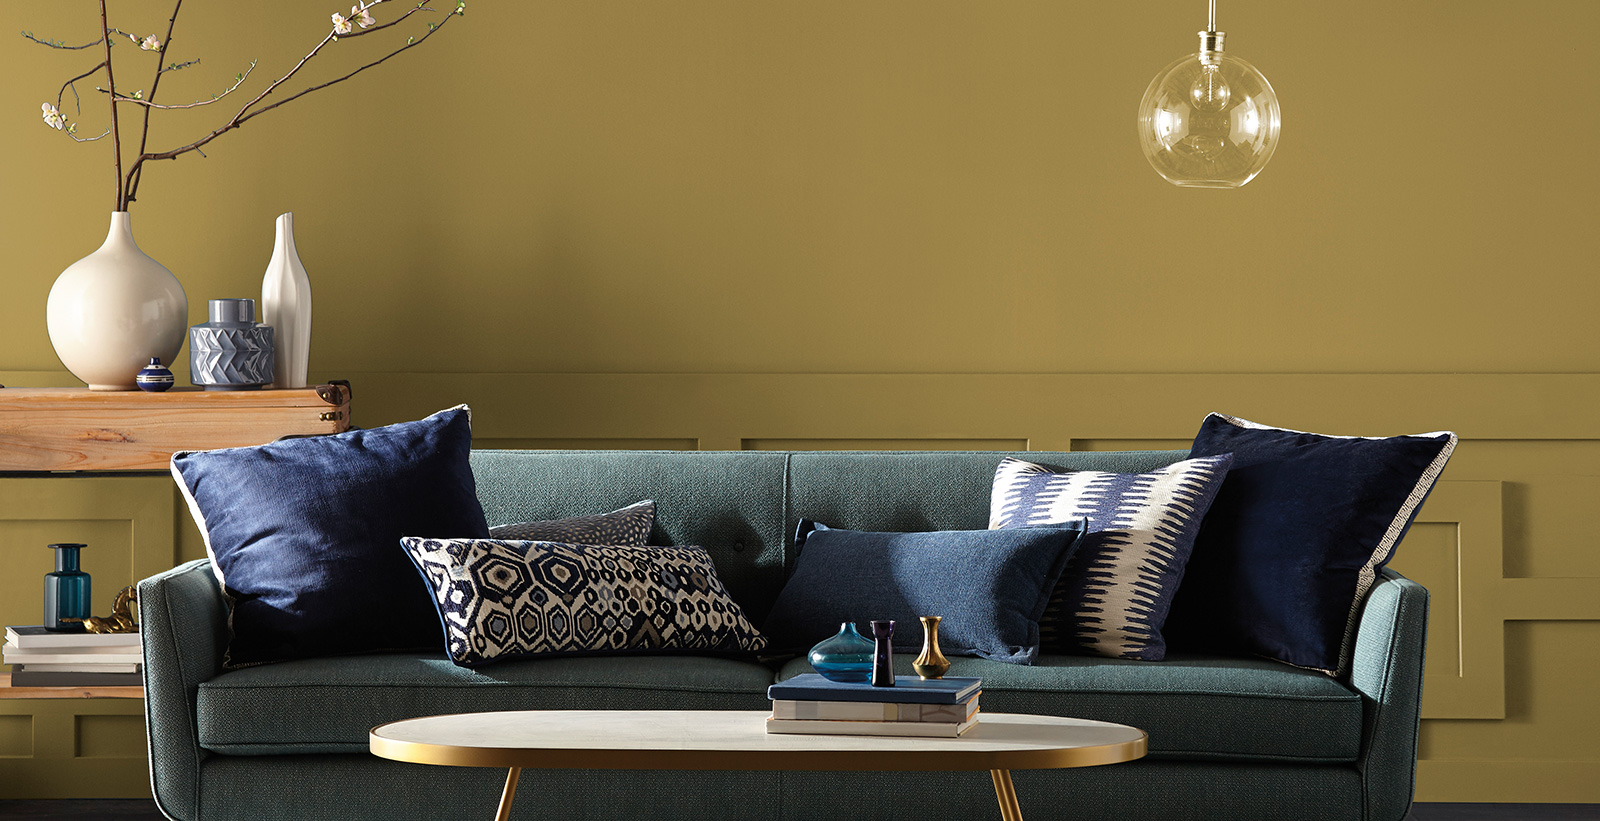 Mid-Century Modern living room with dark gold on walls, denim blue couch, navy and cream throw pillows, and metallic oval coffee table